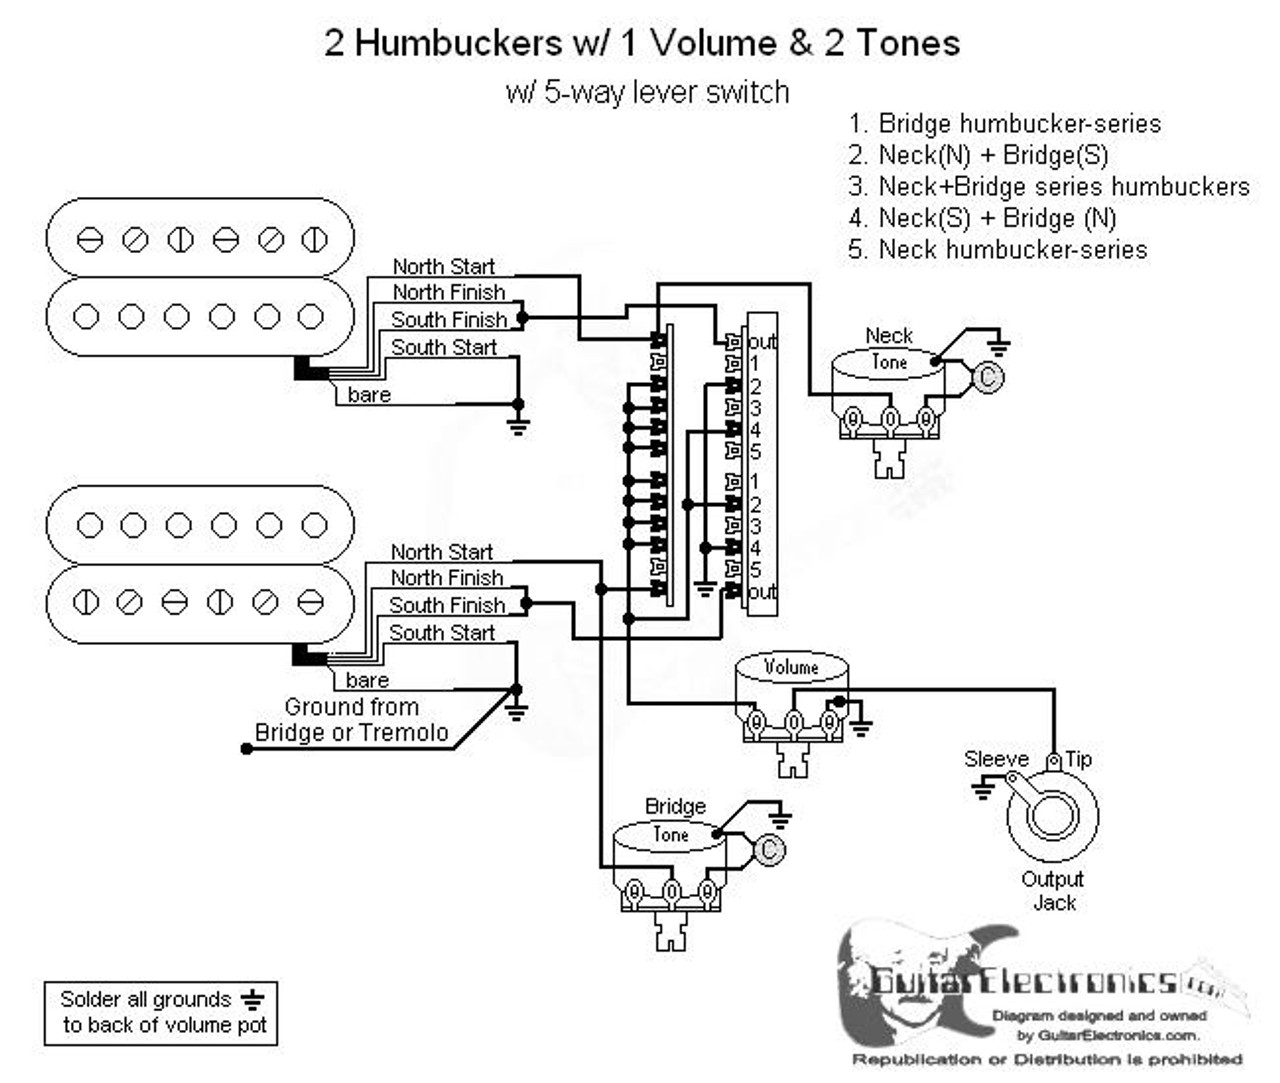 medium resolution of 2 humbuckers 5 way lever switch 1 volume 2 tones 05 2 volume 1 tone 5 way switch wiring diagram